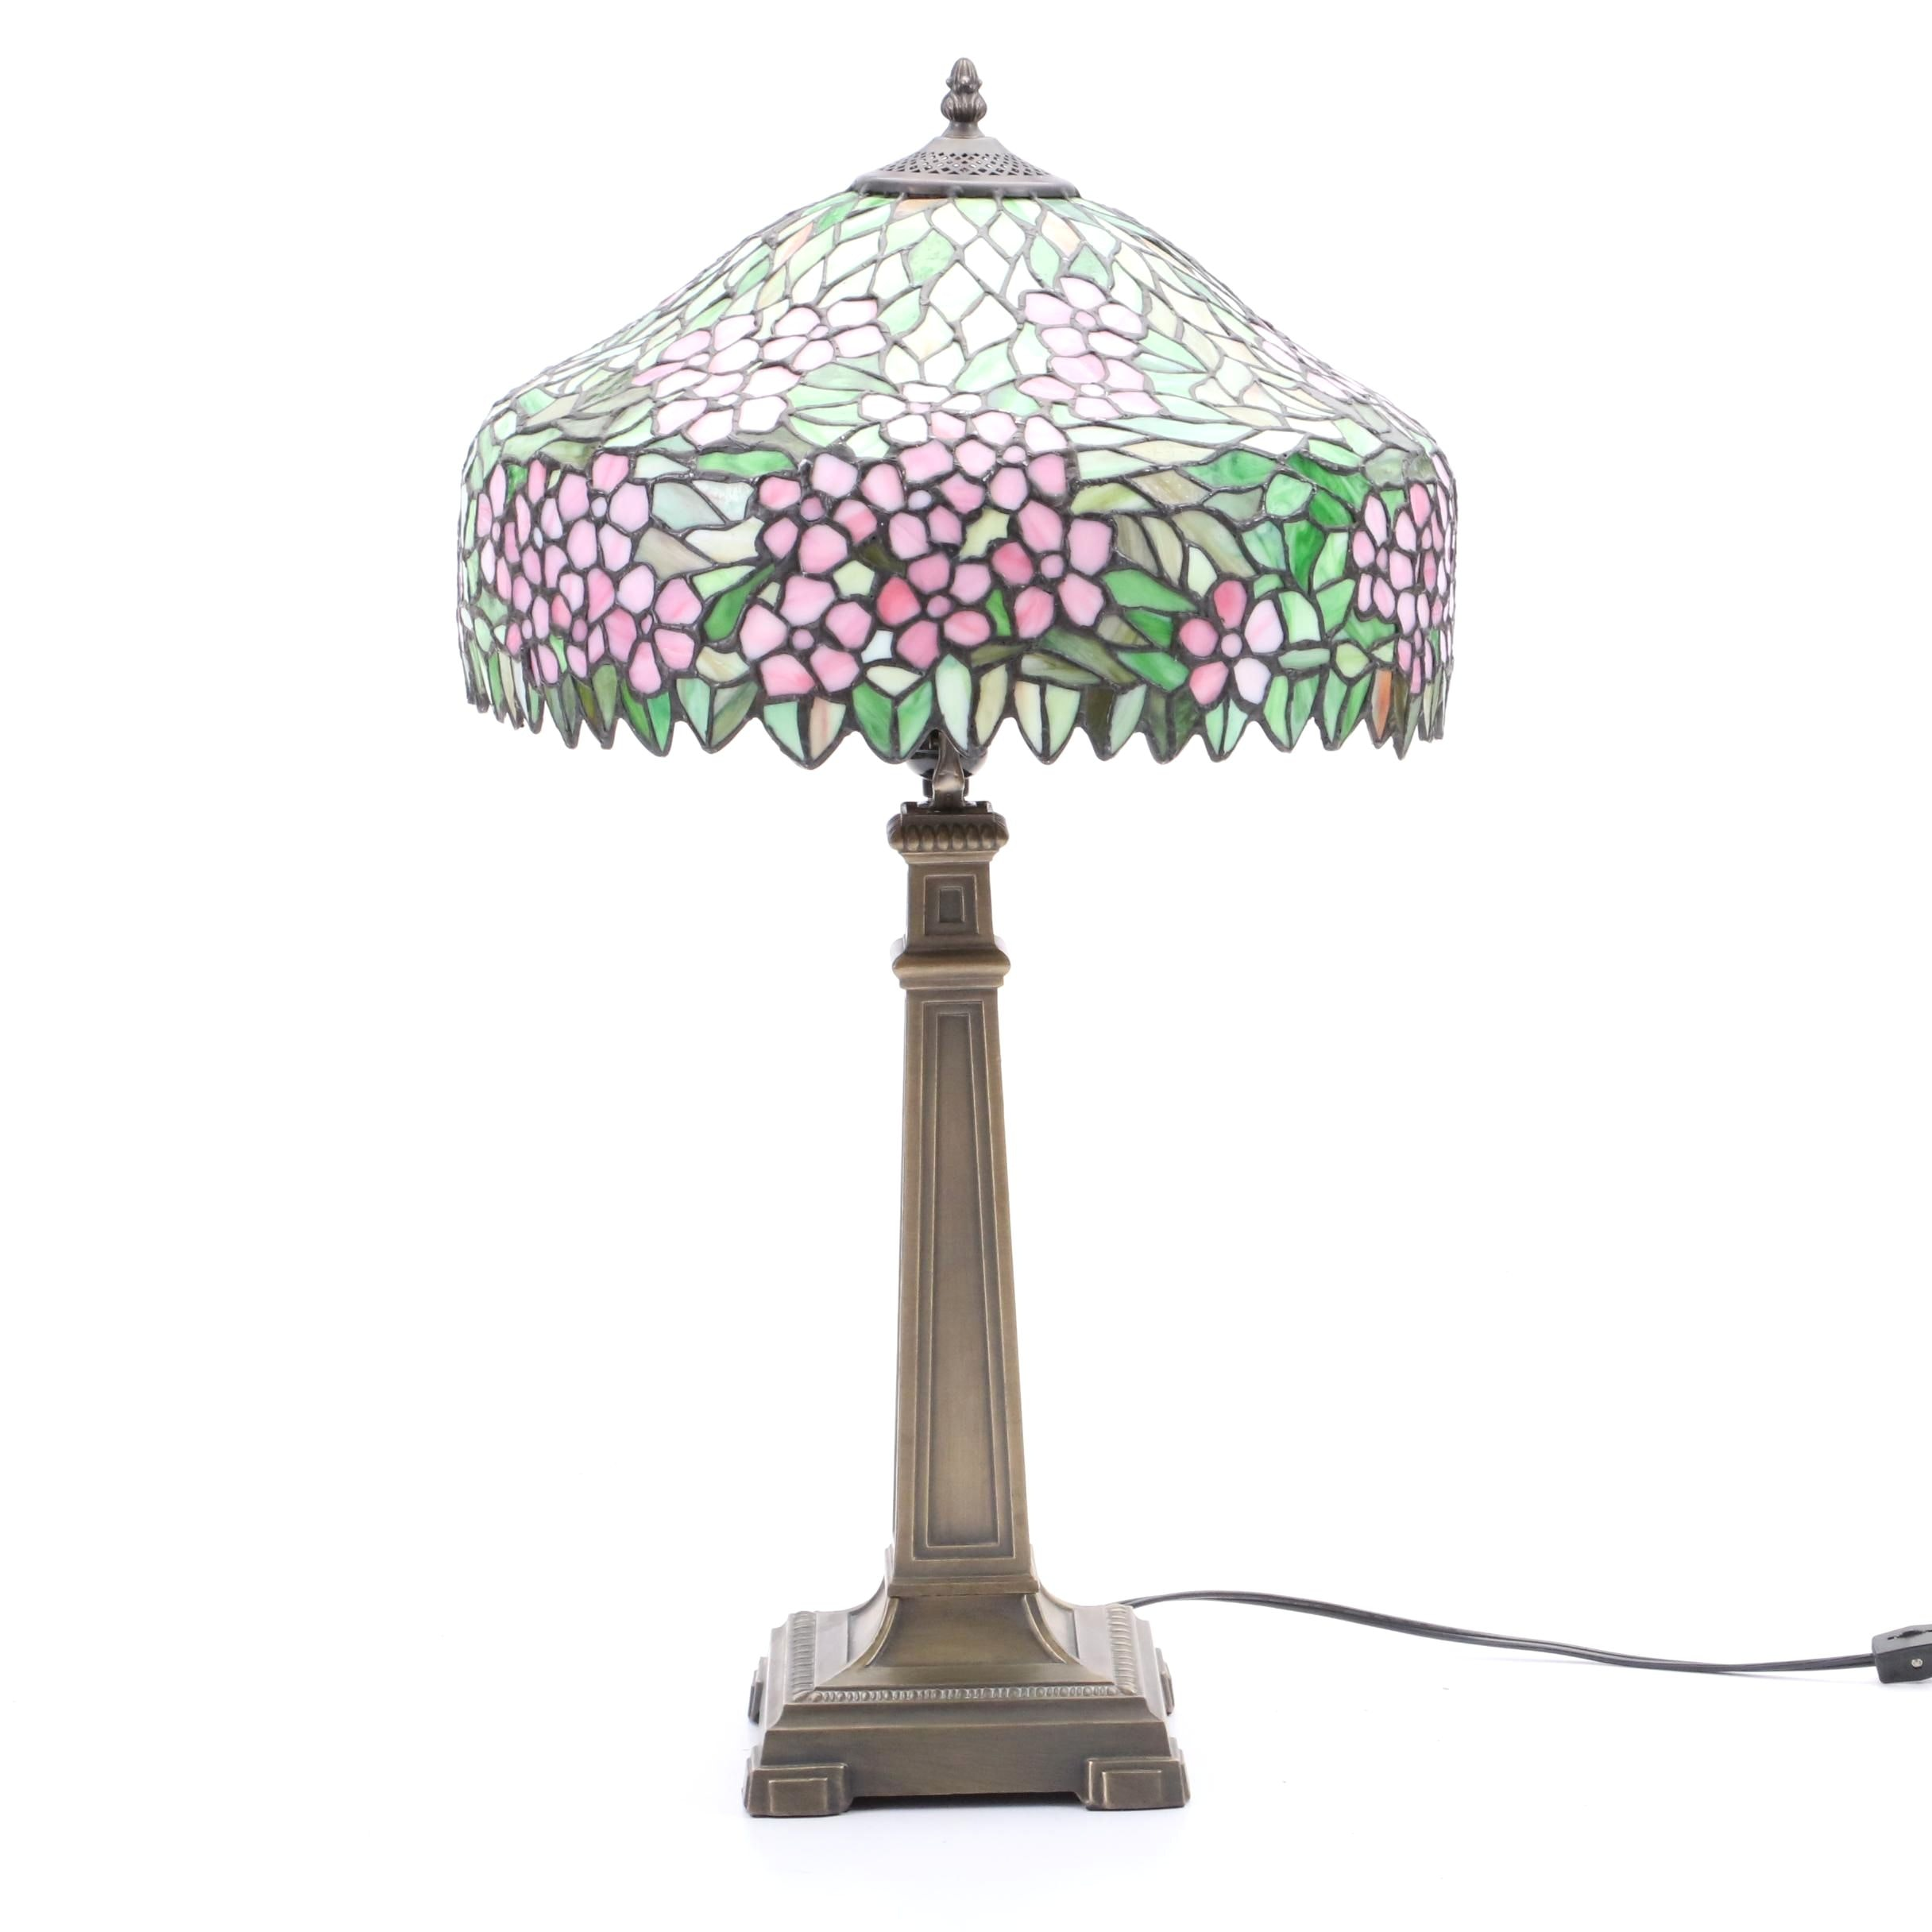 Stain Glass Table Lamp with Wisteria Motif